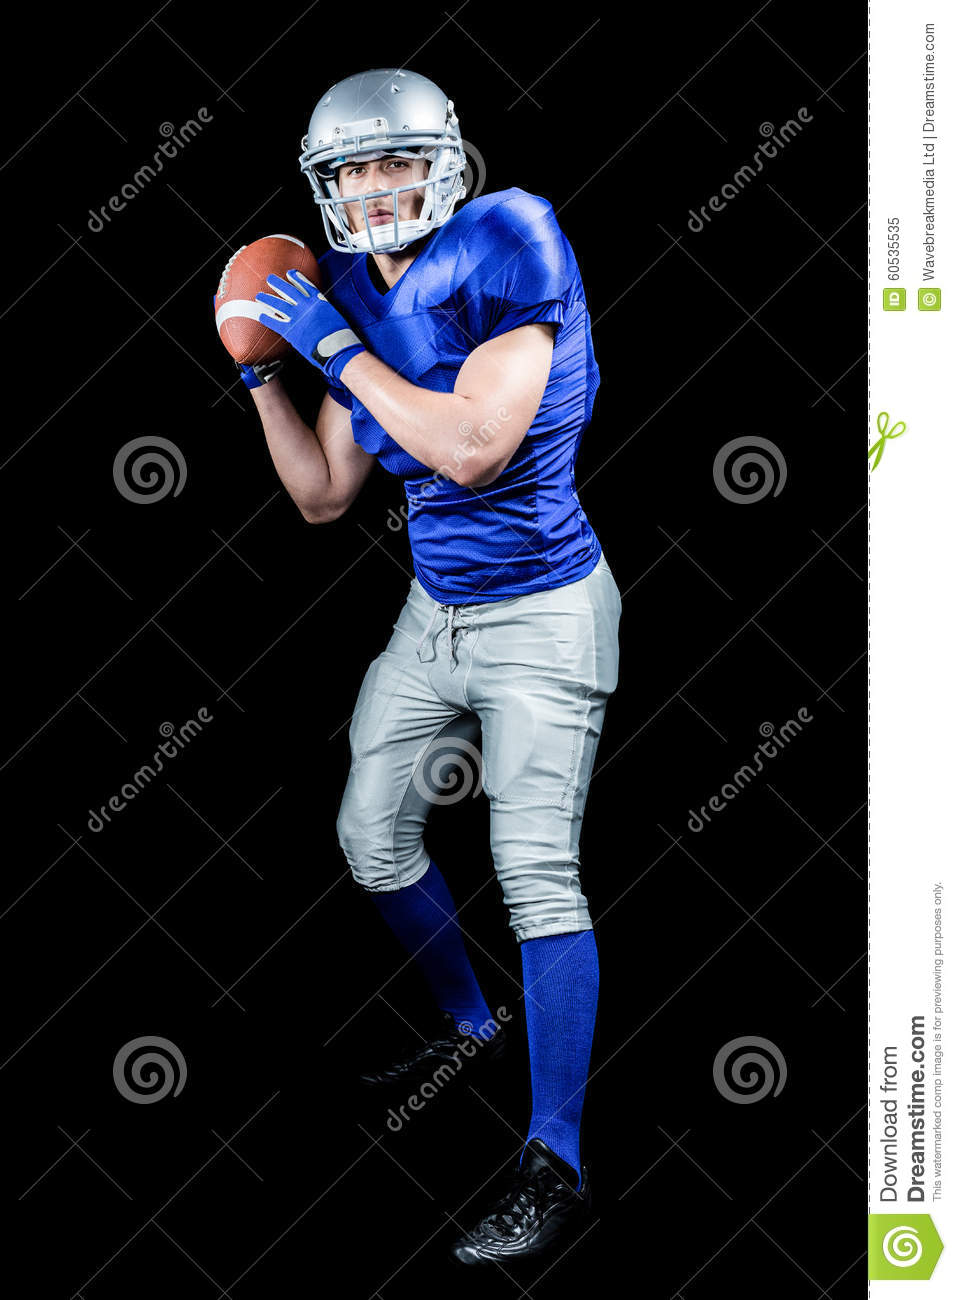 American football player throwing ball over black background